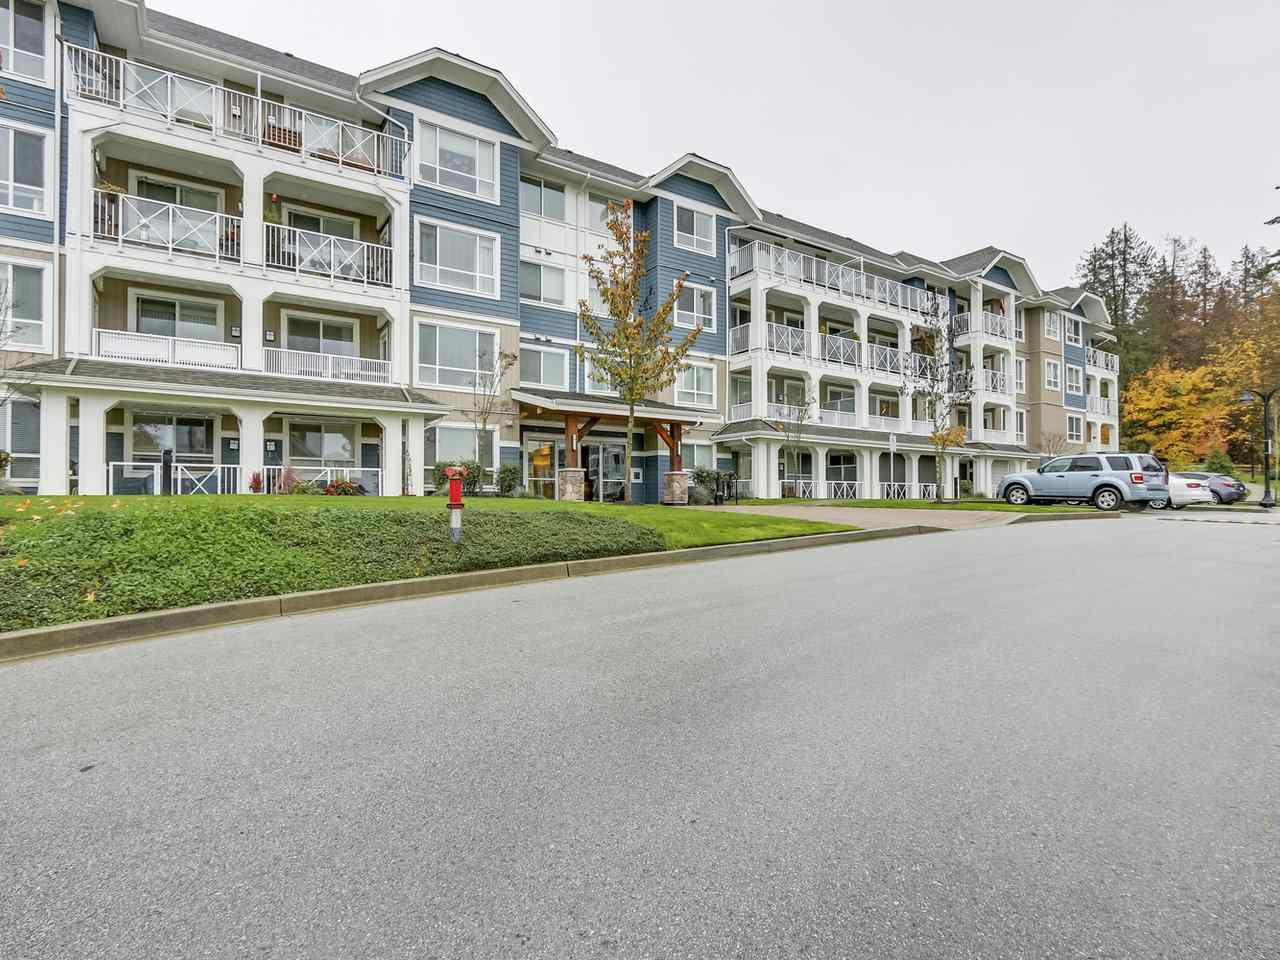 """Main Photo: 107 16396 64 Avenue in Surrey: Cloverdale BC Condo for sale in """"The Ridge at Bose Farm"""" (Cloverdale)  : MLS®# R2320209"""